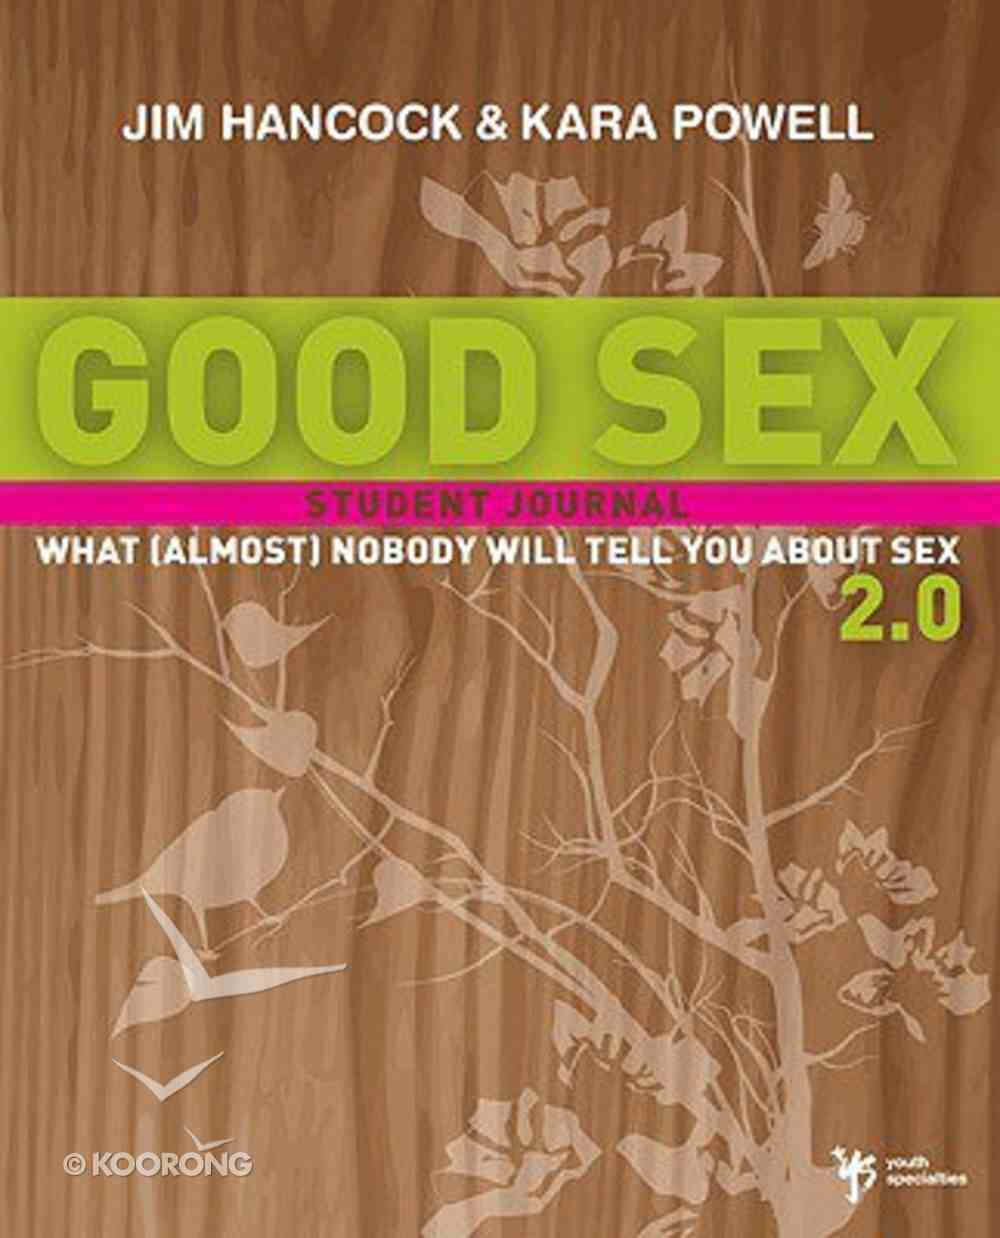 Good Sex Curriculum 2.0 - What Nobody Will Tell You About Sex (Almost) Paperback